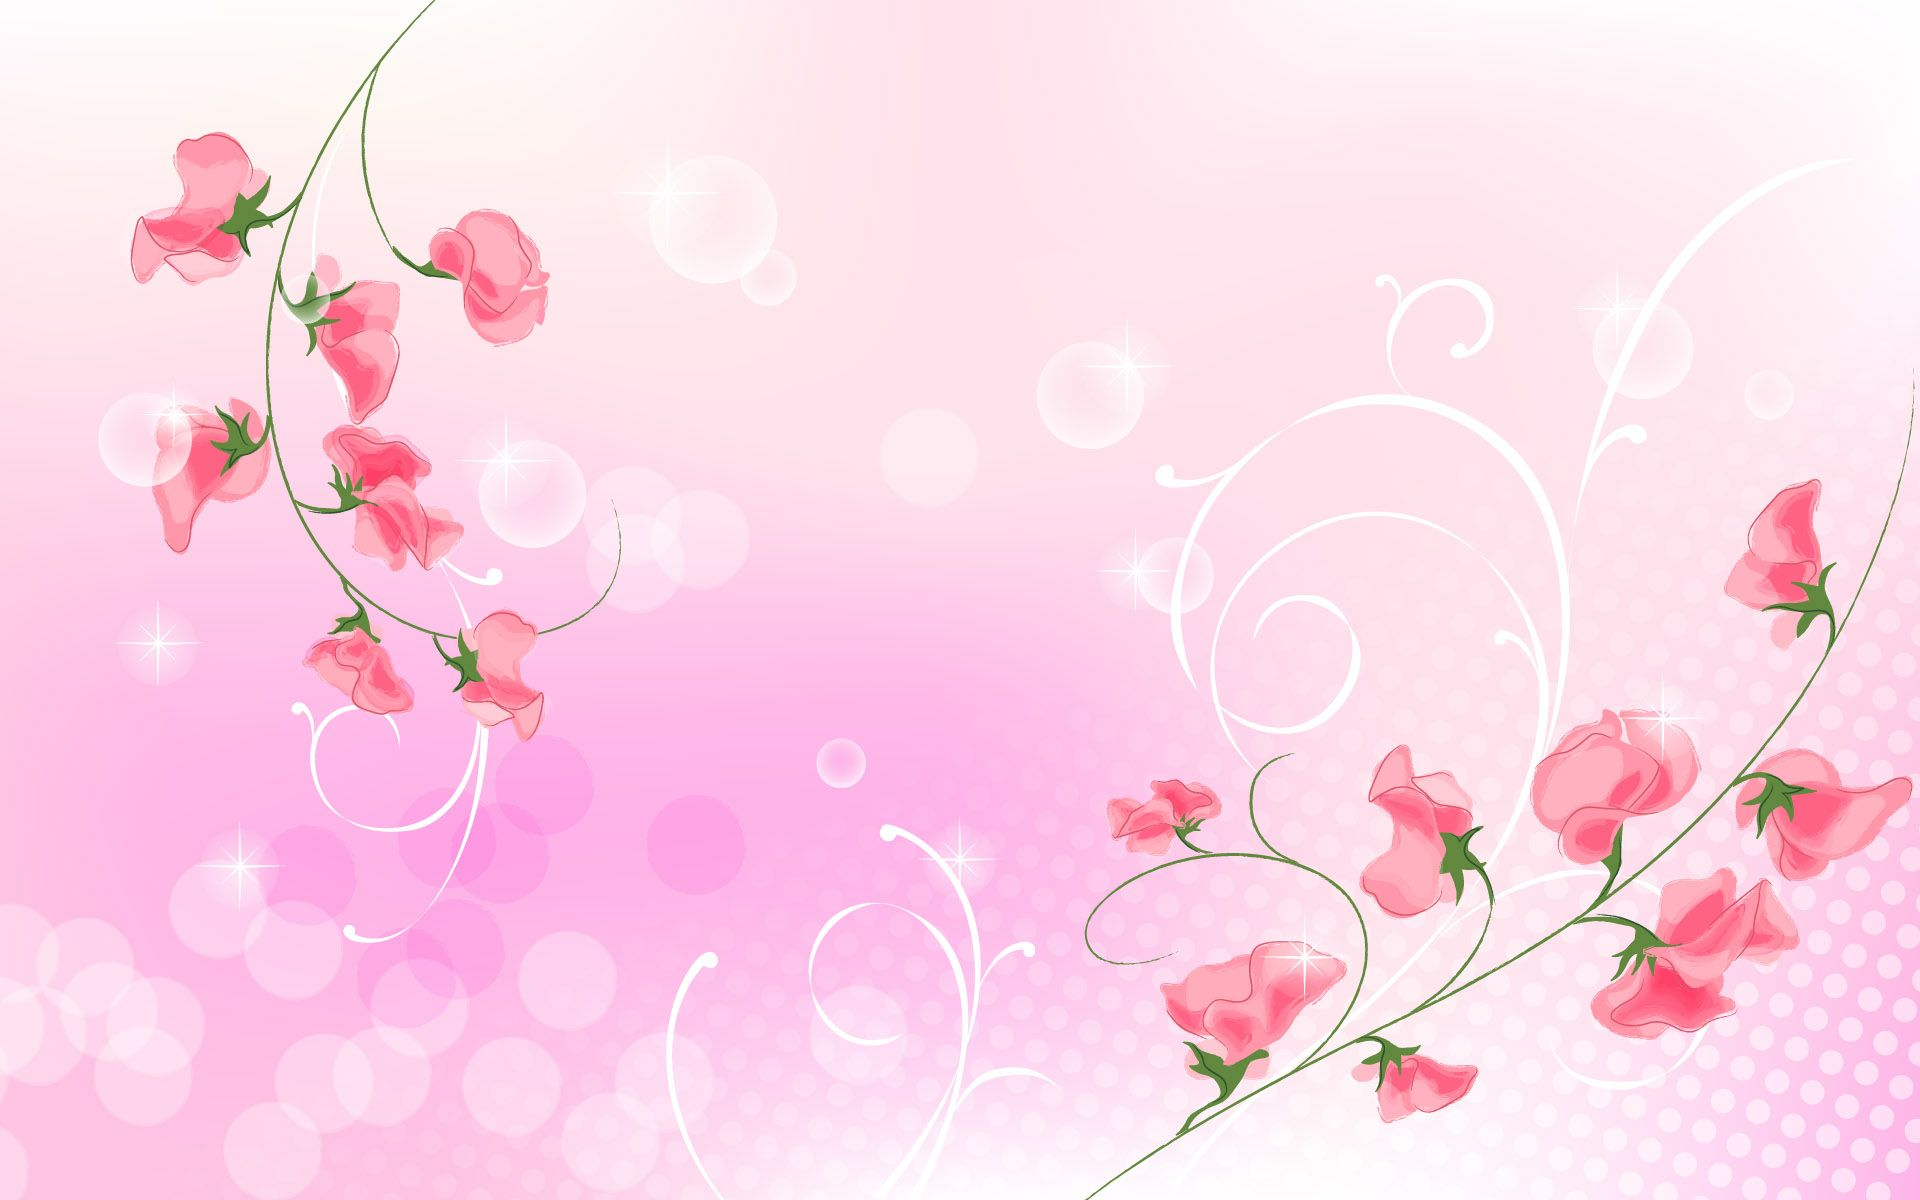 floral backgrounds | ... Flower and Light Pink Background, a Great ... for Light Pink Flower Wallpaper  110ylc